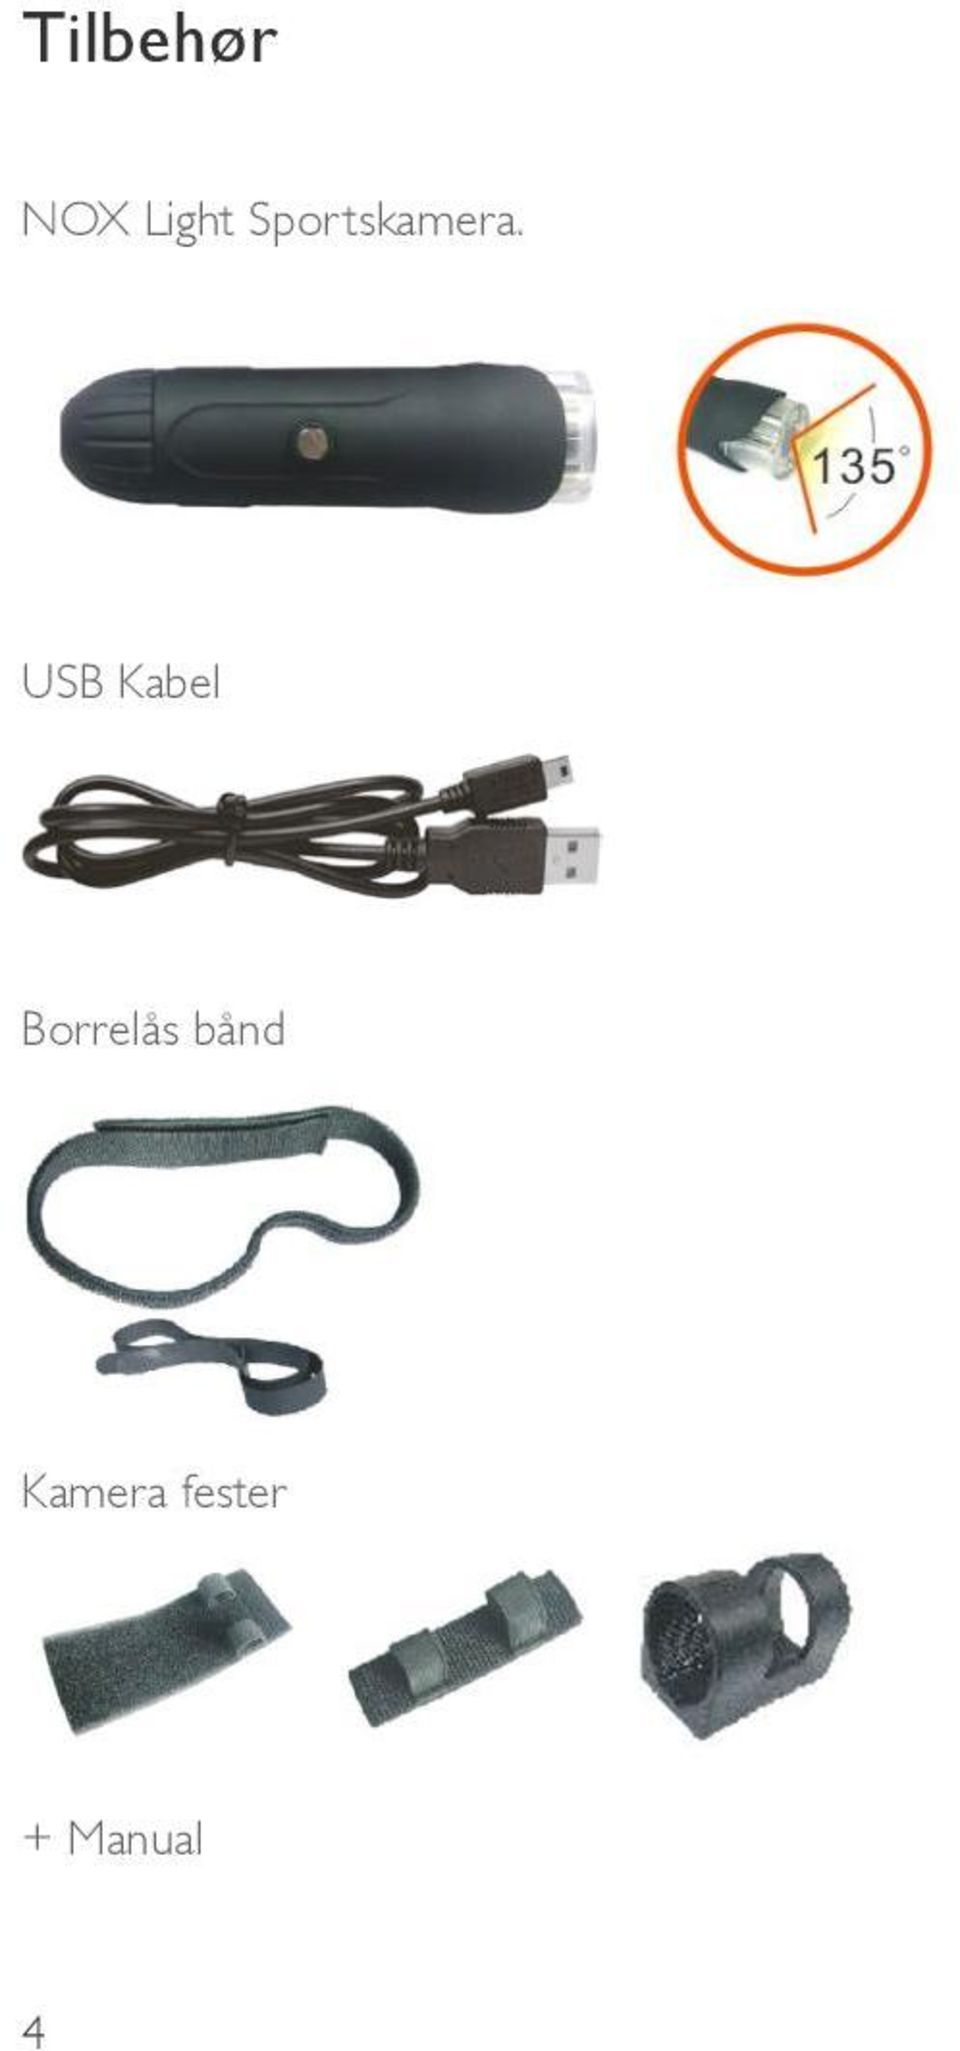 USB Kabel Borrelås